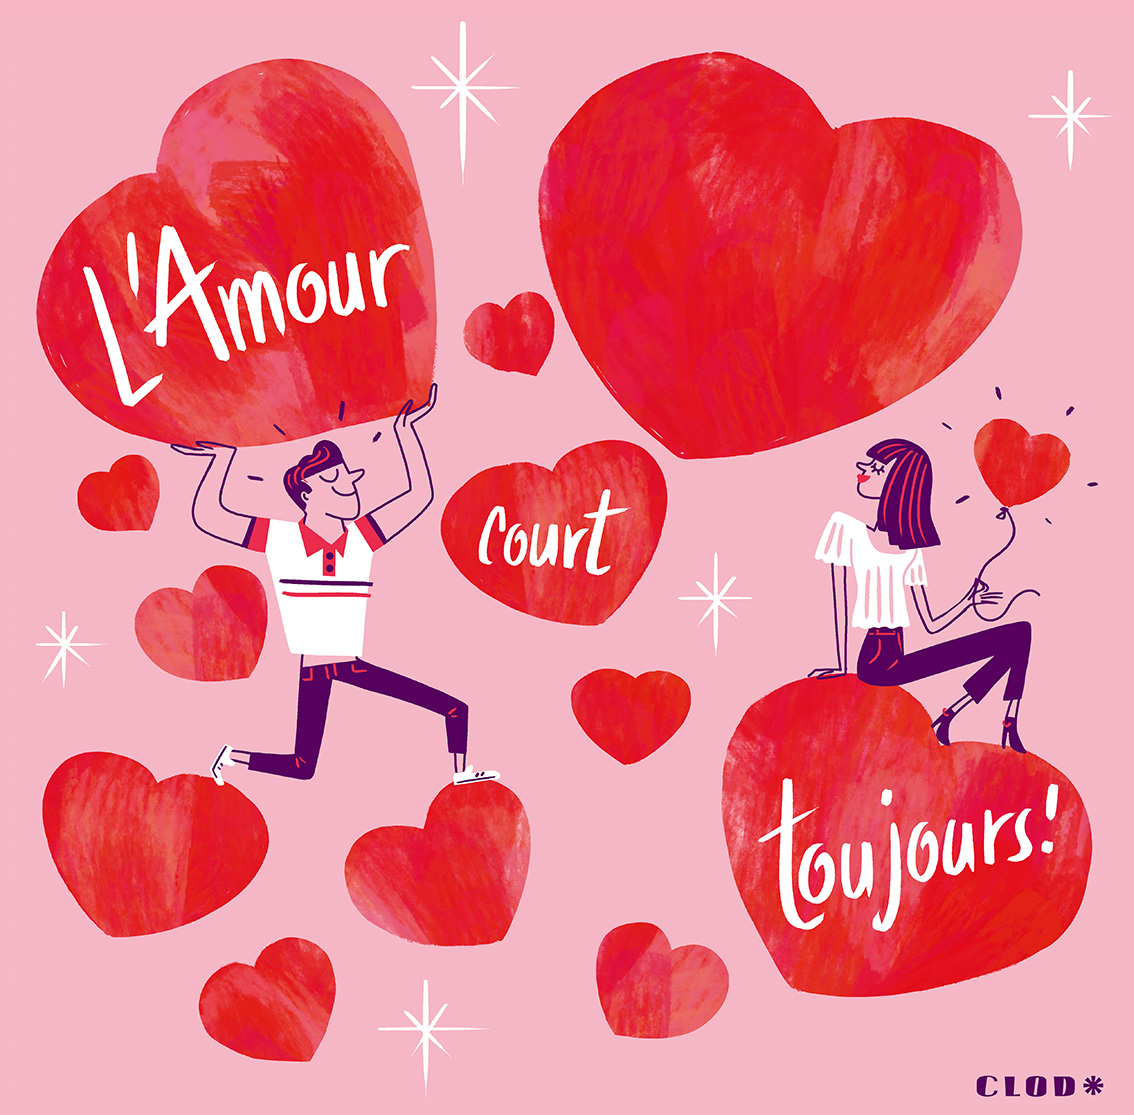 Clod illustration Saint-Valentin, il y a de l'Amour dans l'air